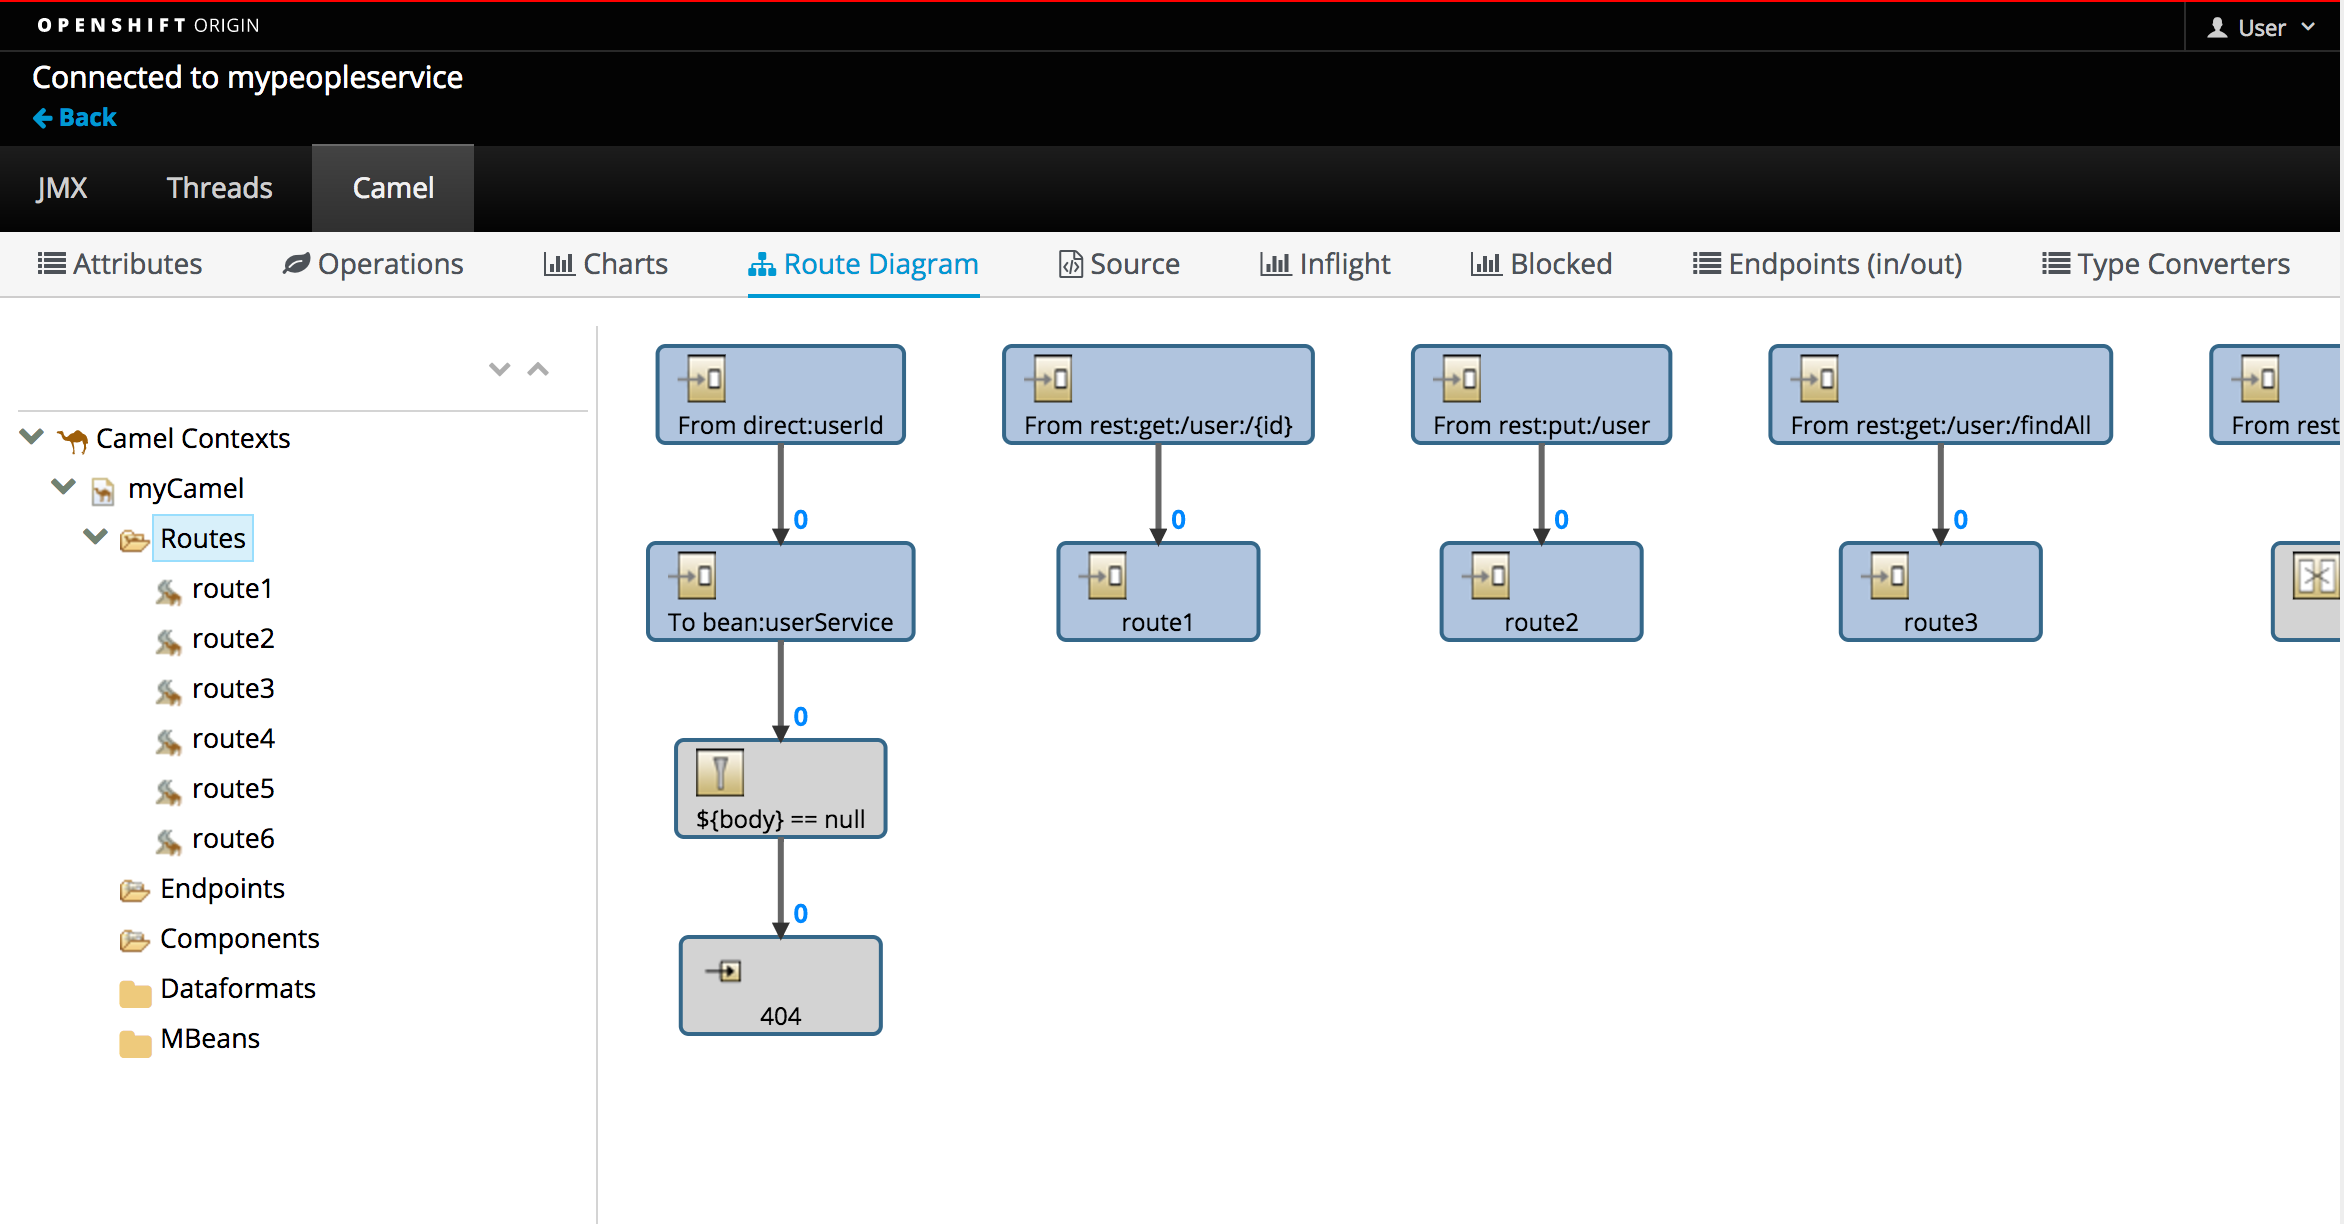 Developing APIs using Red Hat OpenShift and JBoss Fuse   openshift